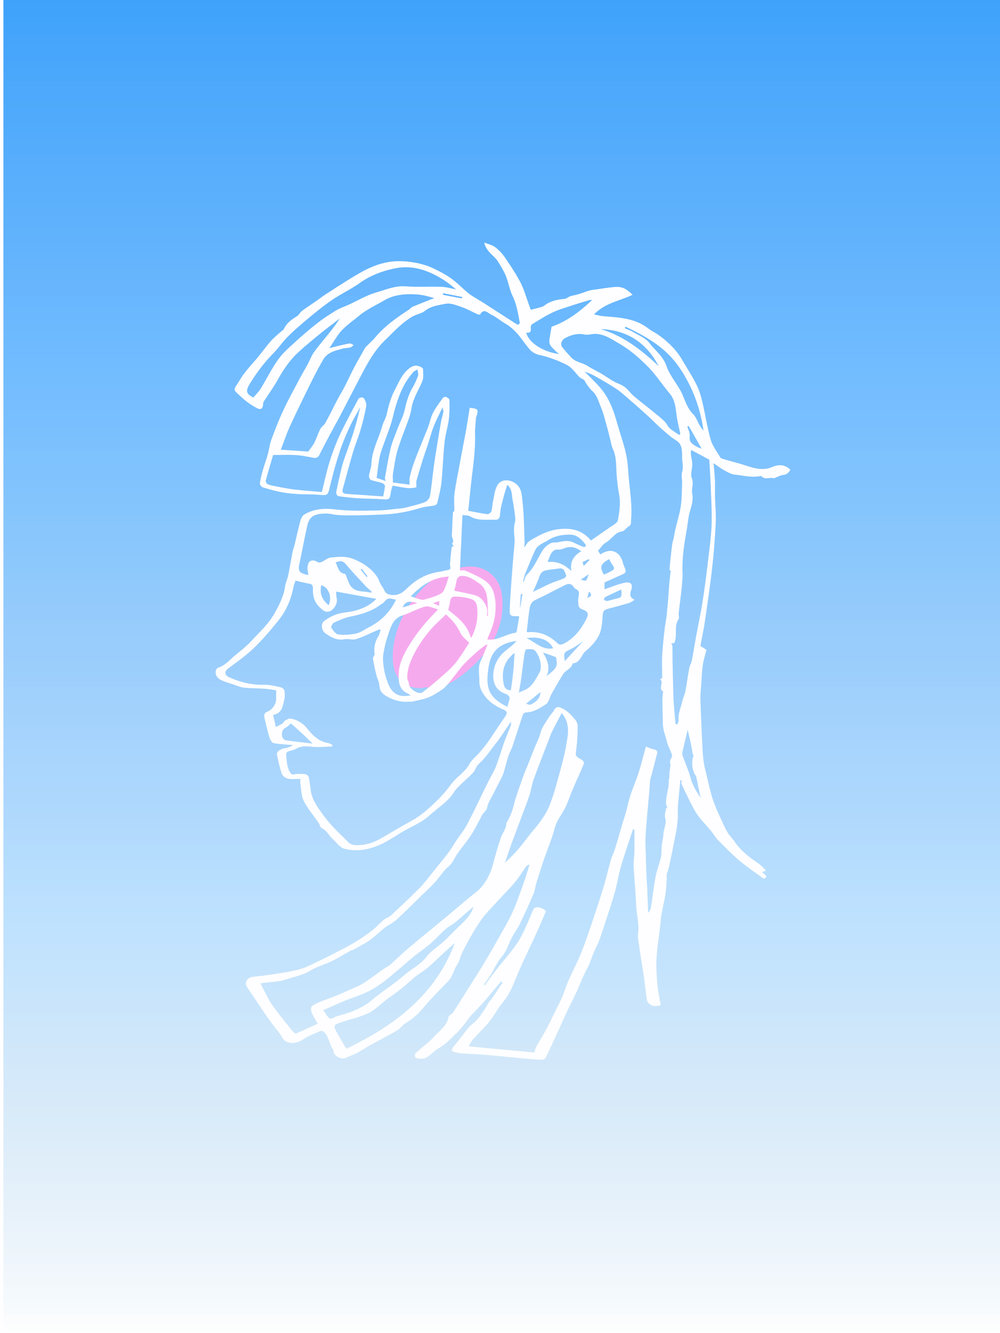 Girl with Bangs-02.JPG